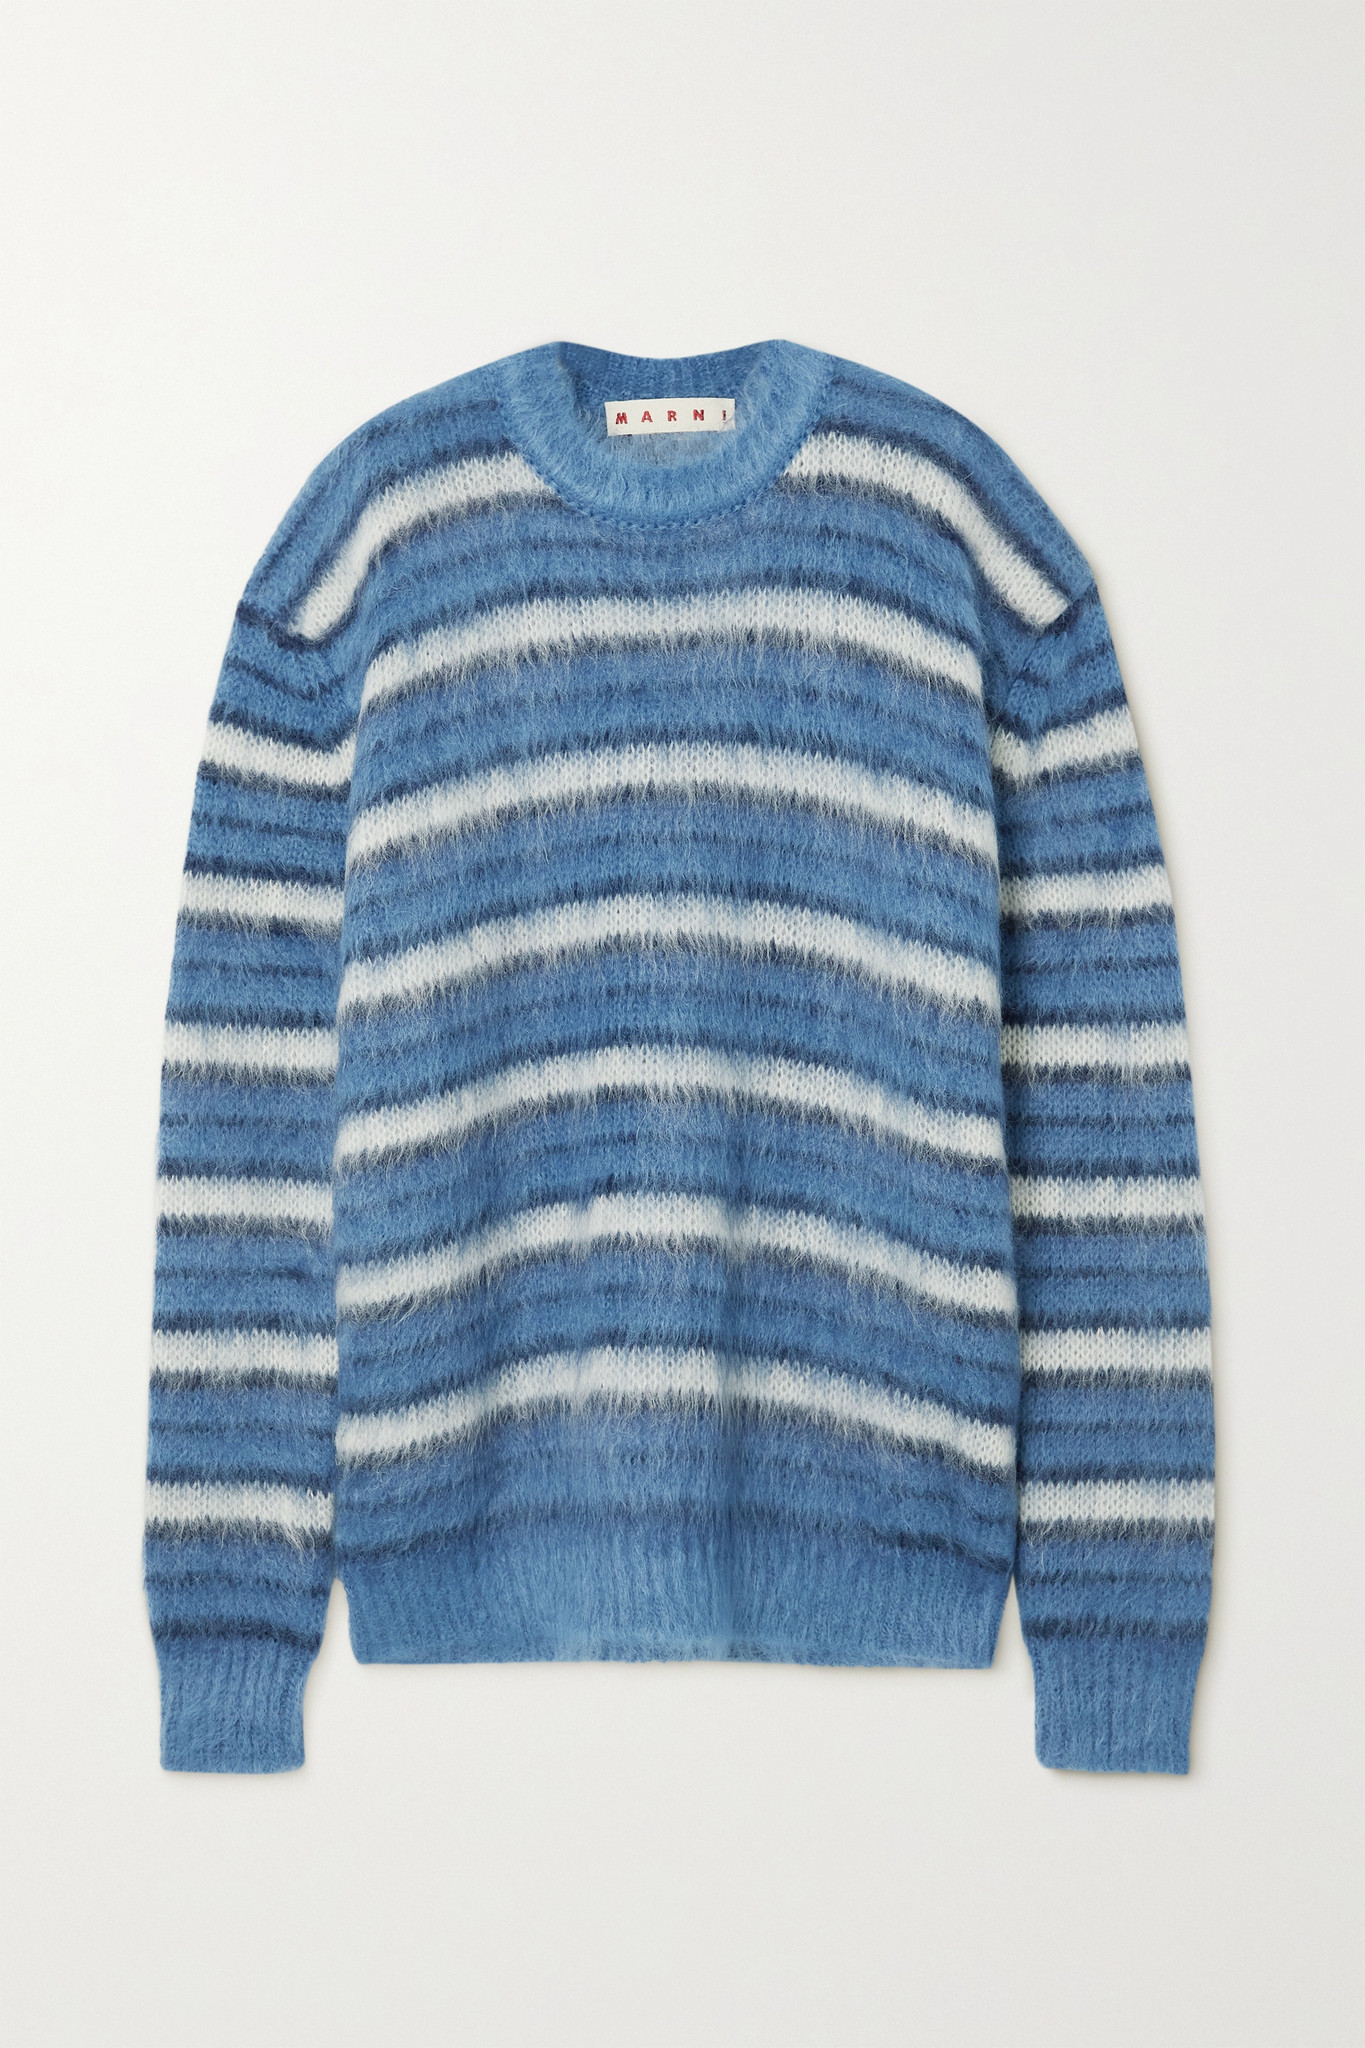 MARNI - Striped Brushed Mohair-blend Sweater - Blue - IT42